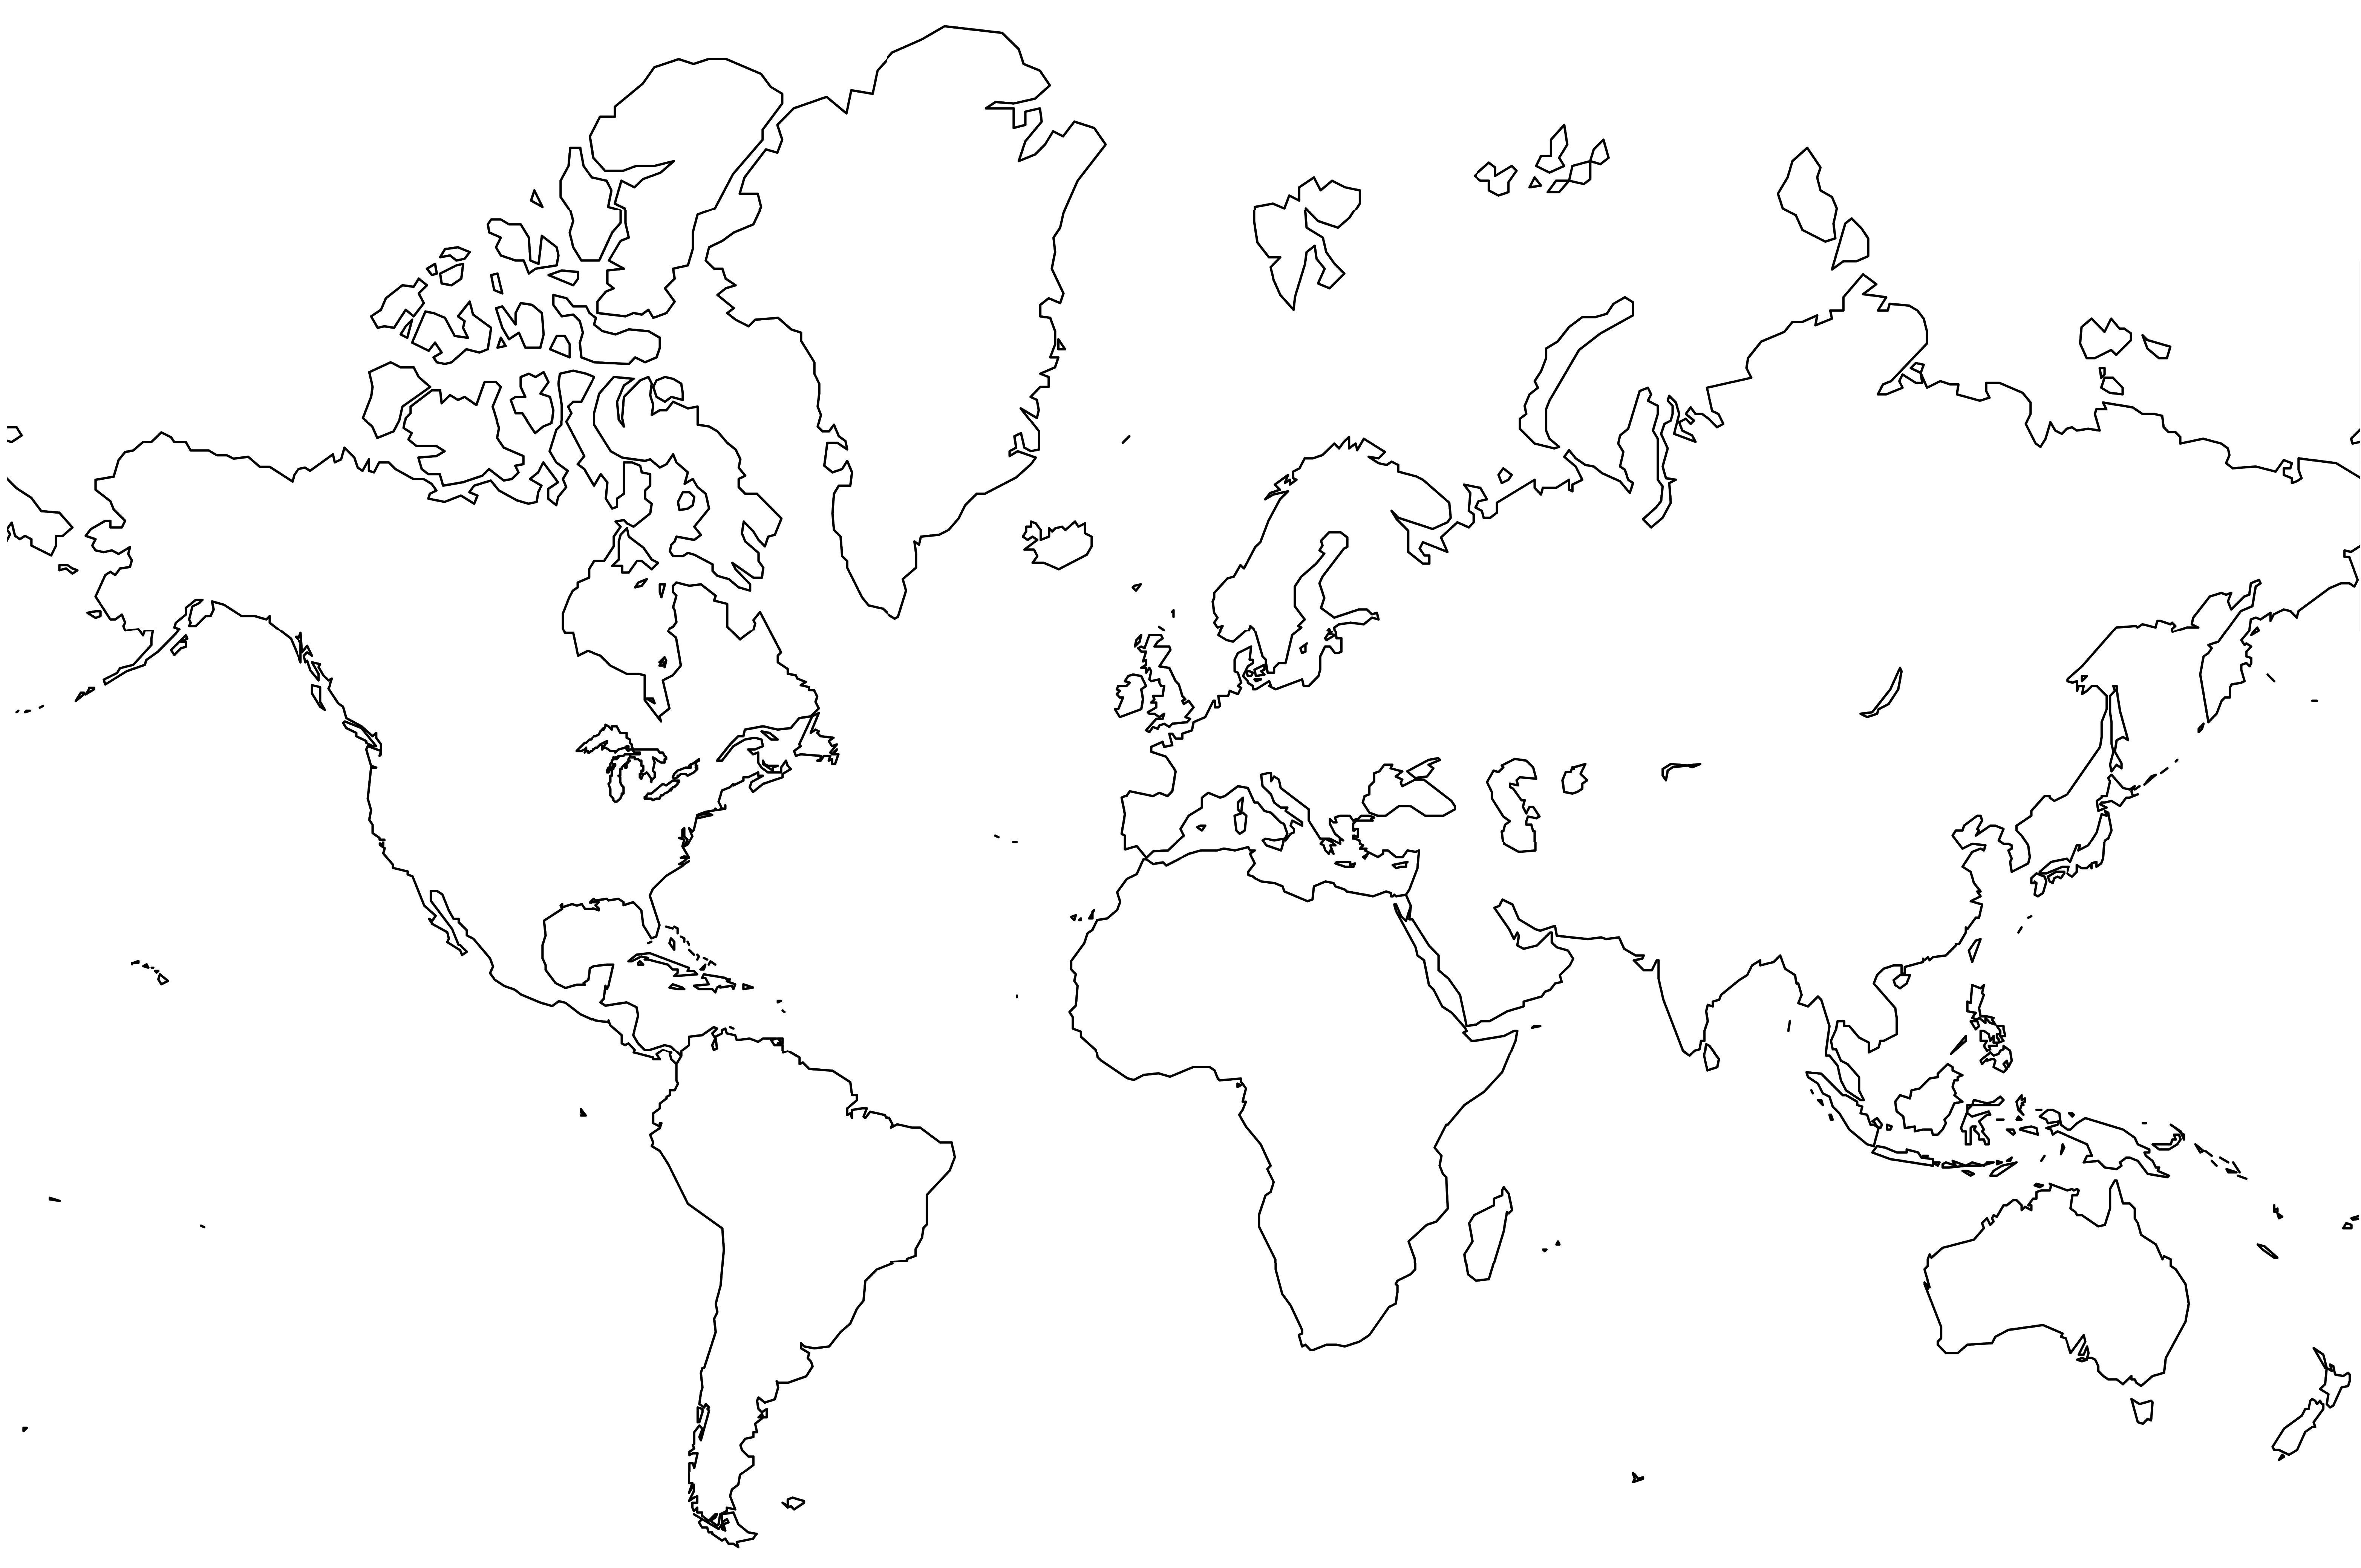 World map outline easy. Action clipart simple